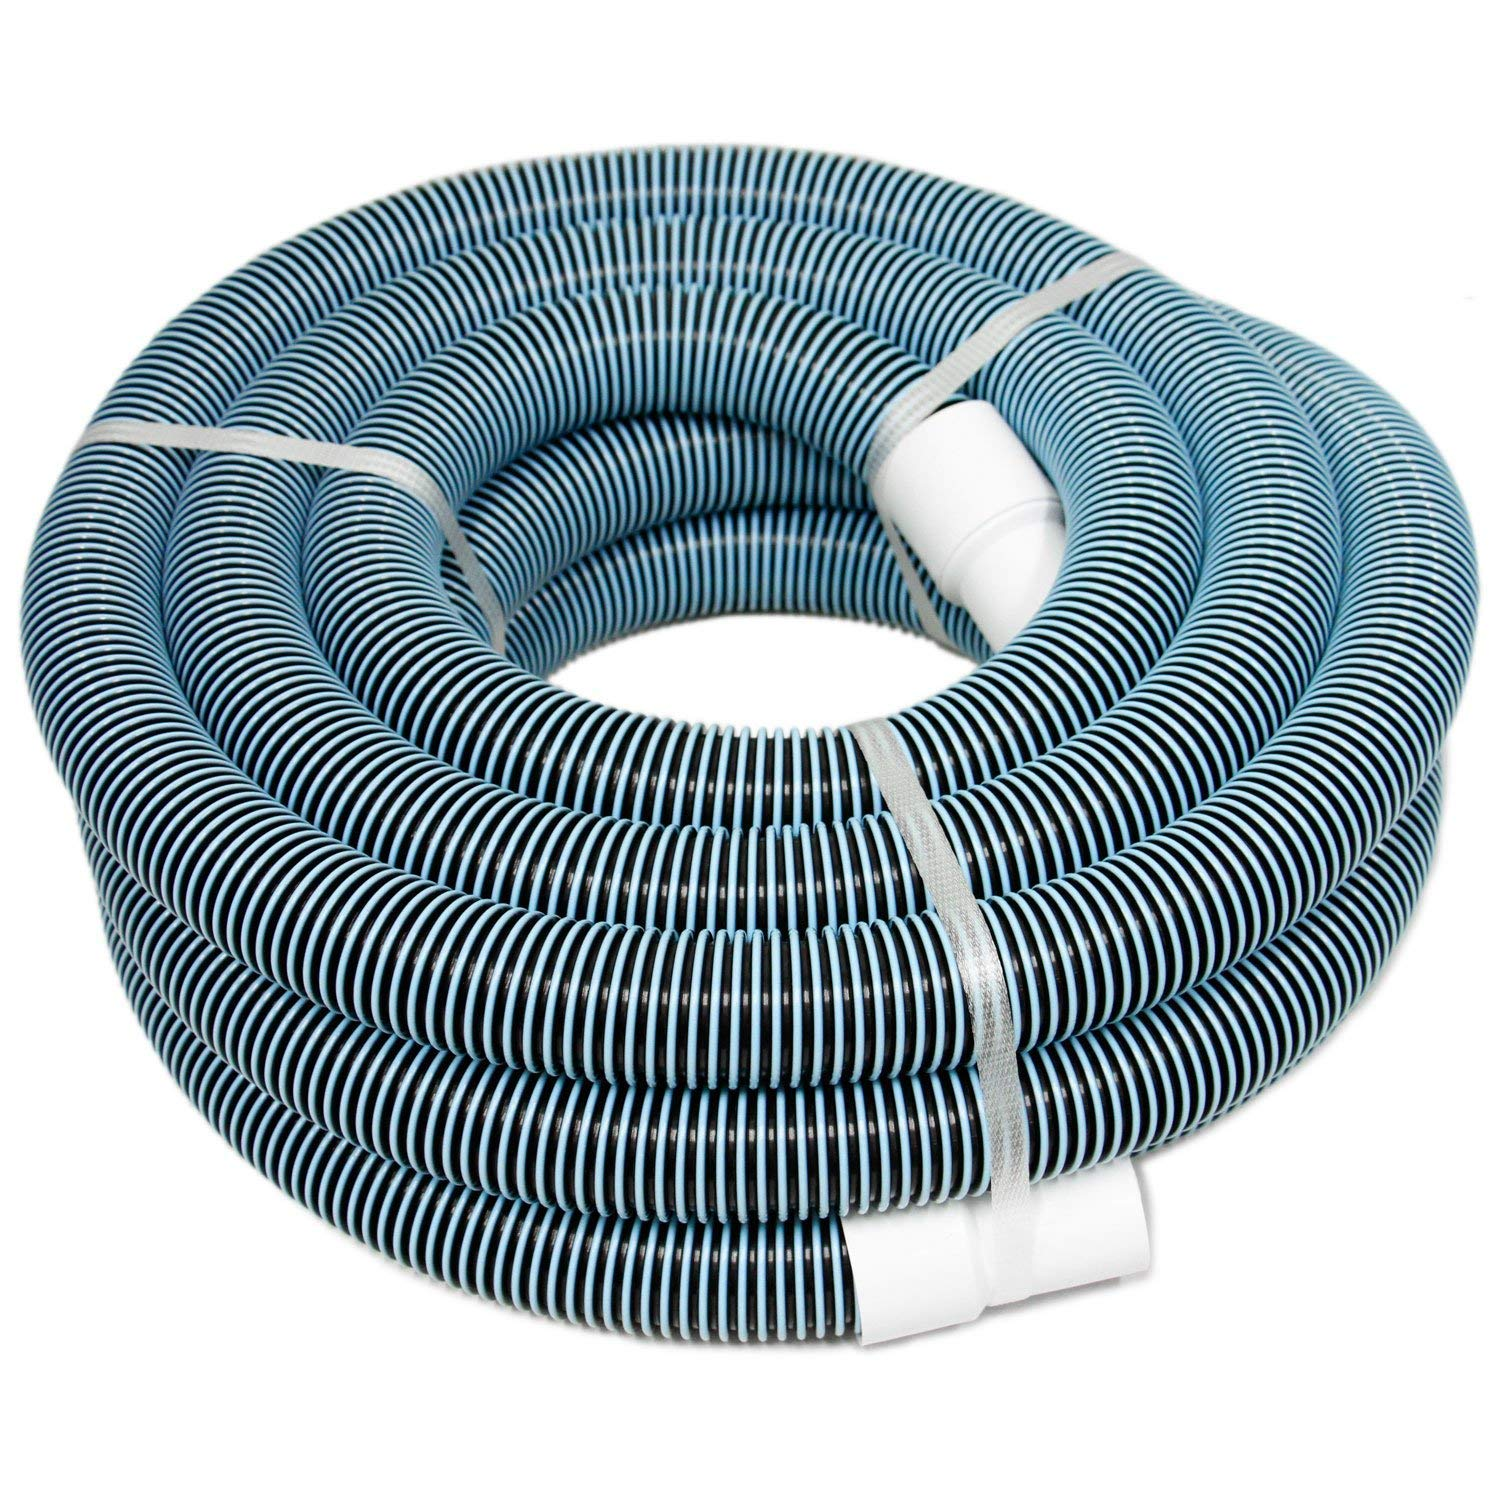 "POOLWHALE 1.5""x 36ft 2-Color Heavy Duty Spiral Wound Vacuum Hose with Swivel Cuff"